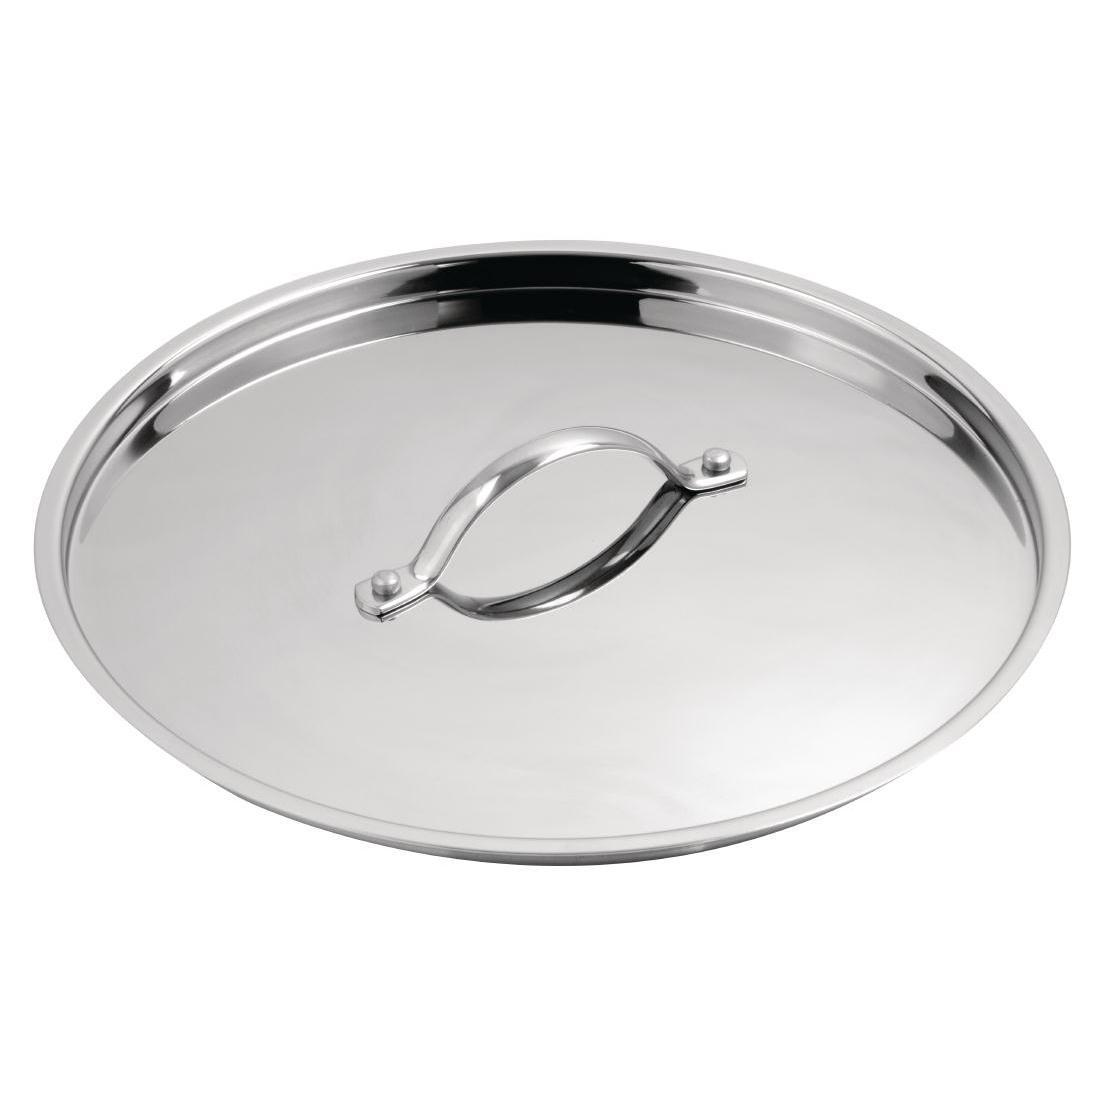 Vogue Stainless Steel Lid 180mm - Y427